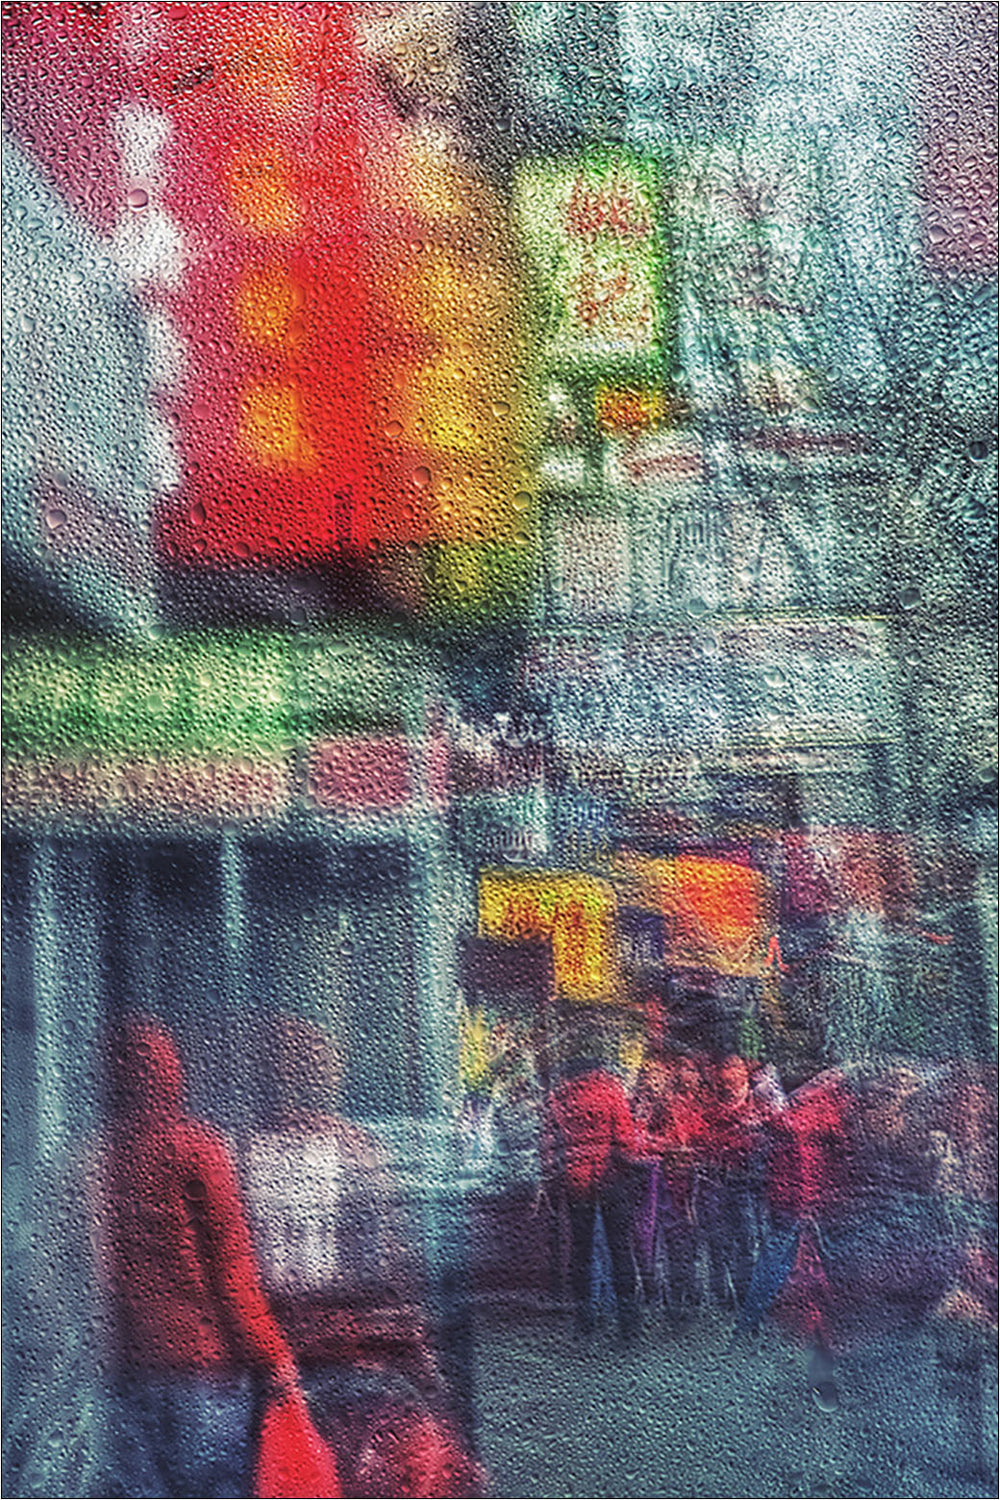 Rain in Chinatown, New York. [3/3] | New York Through the Rain Series. | Limited Ed. Fine Art Print.